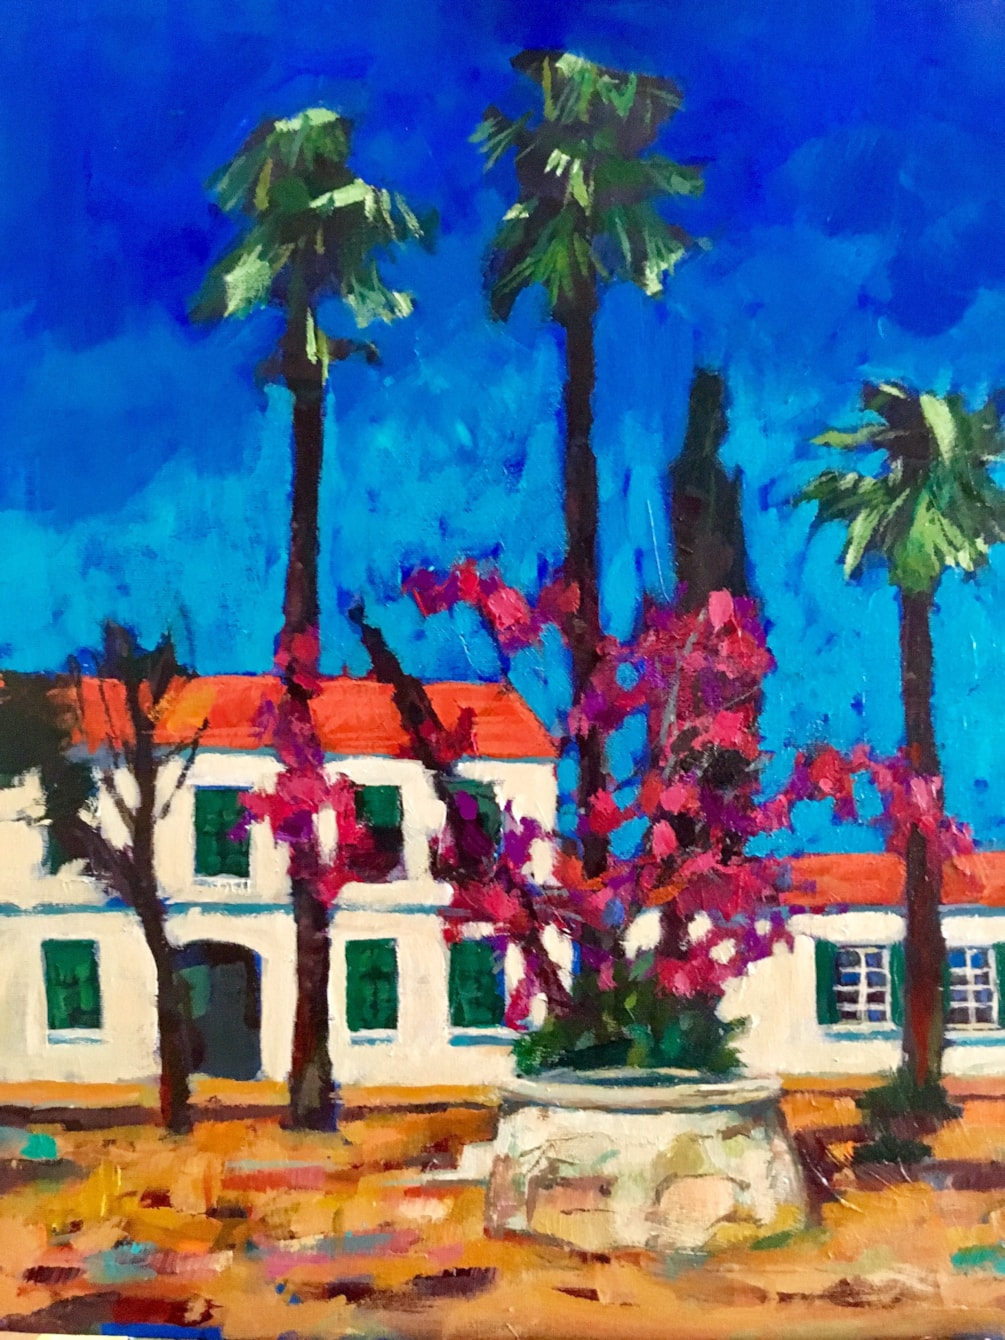 'The Old Police Station at Polis' - Cyprus